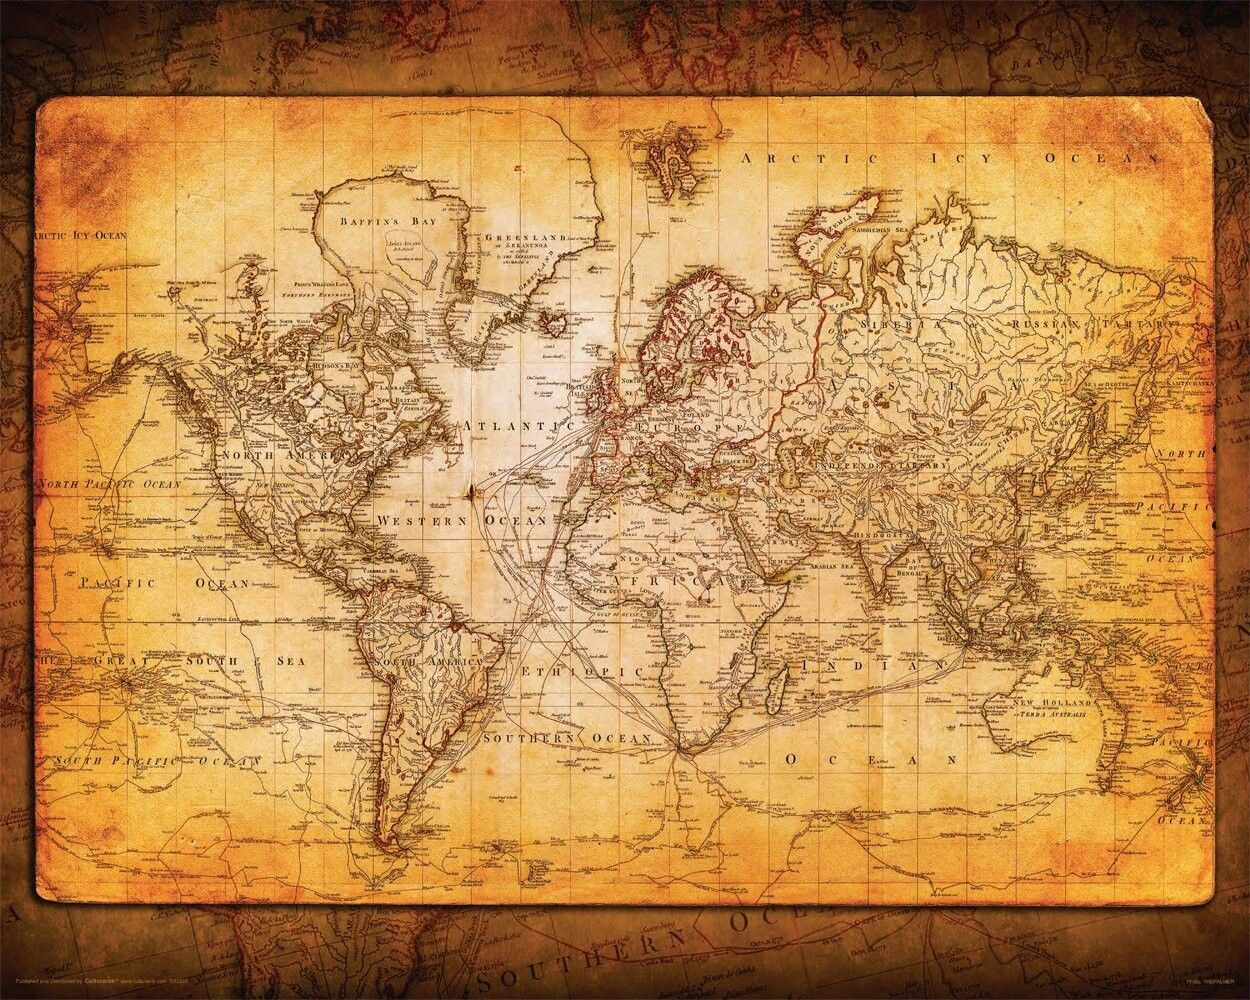 World Map Antique Vintage Old Style Decorative Educational Poster